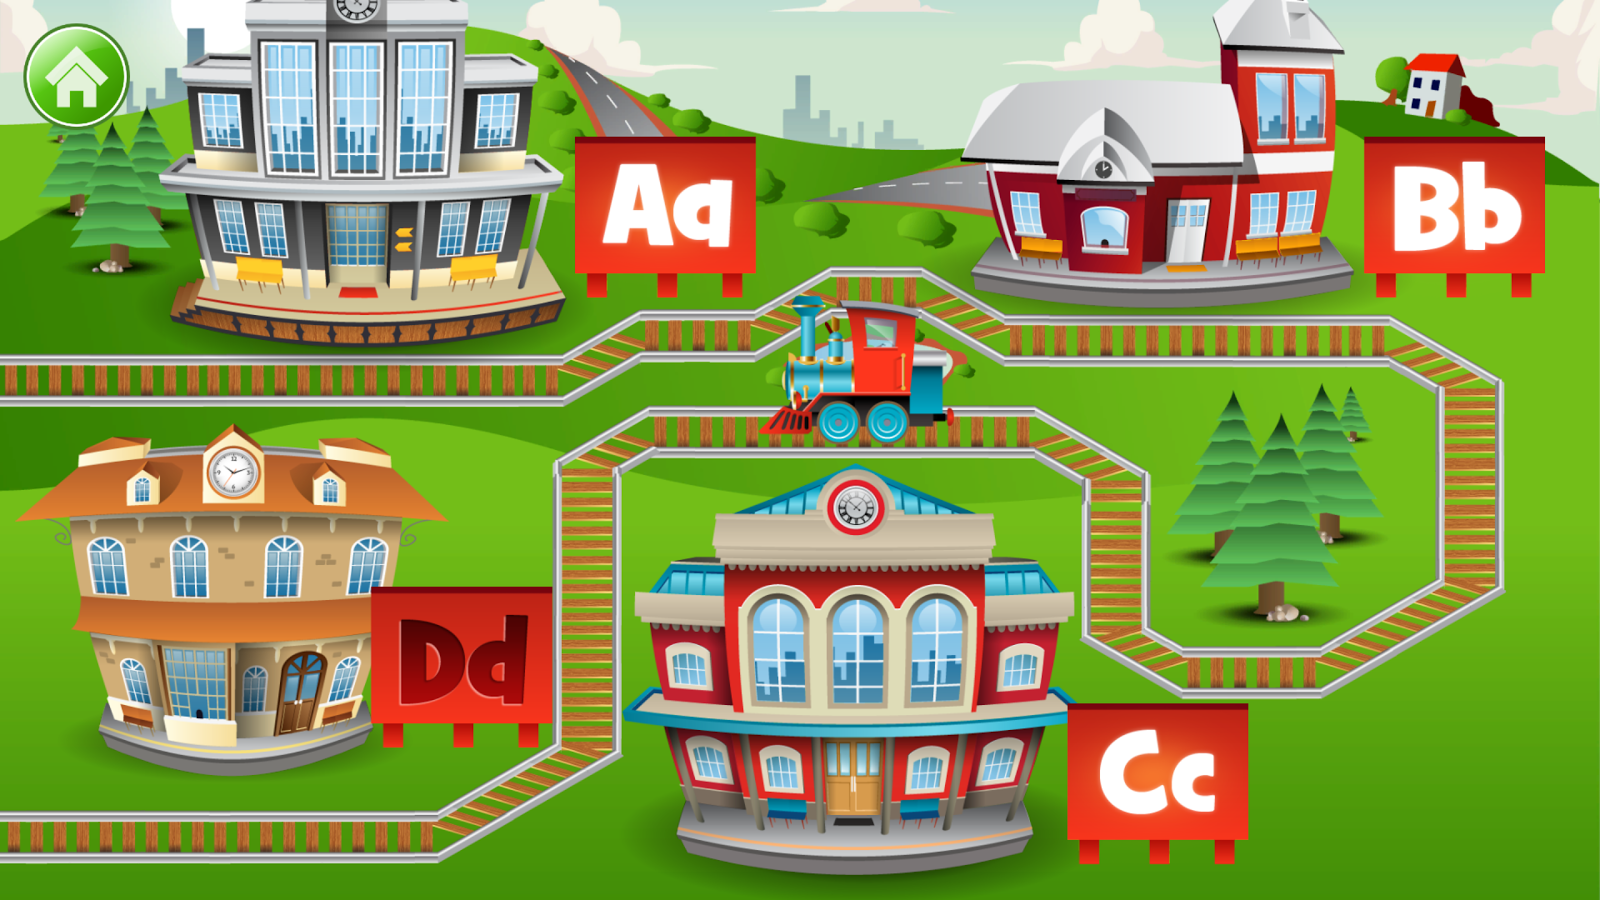 Kids ABC Letter Trains Screenshot 4